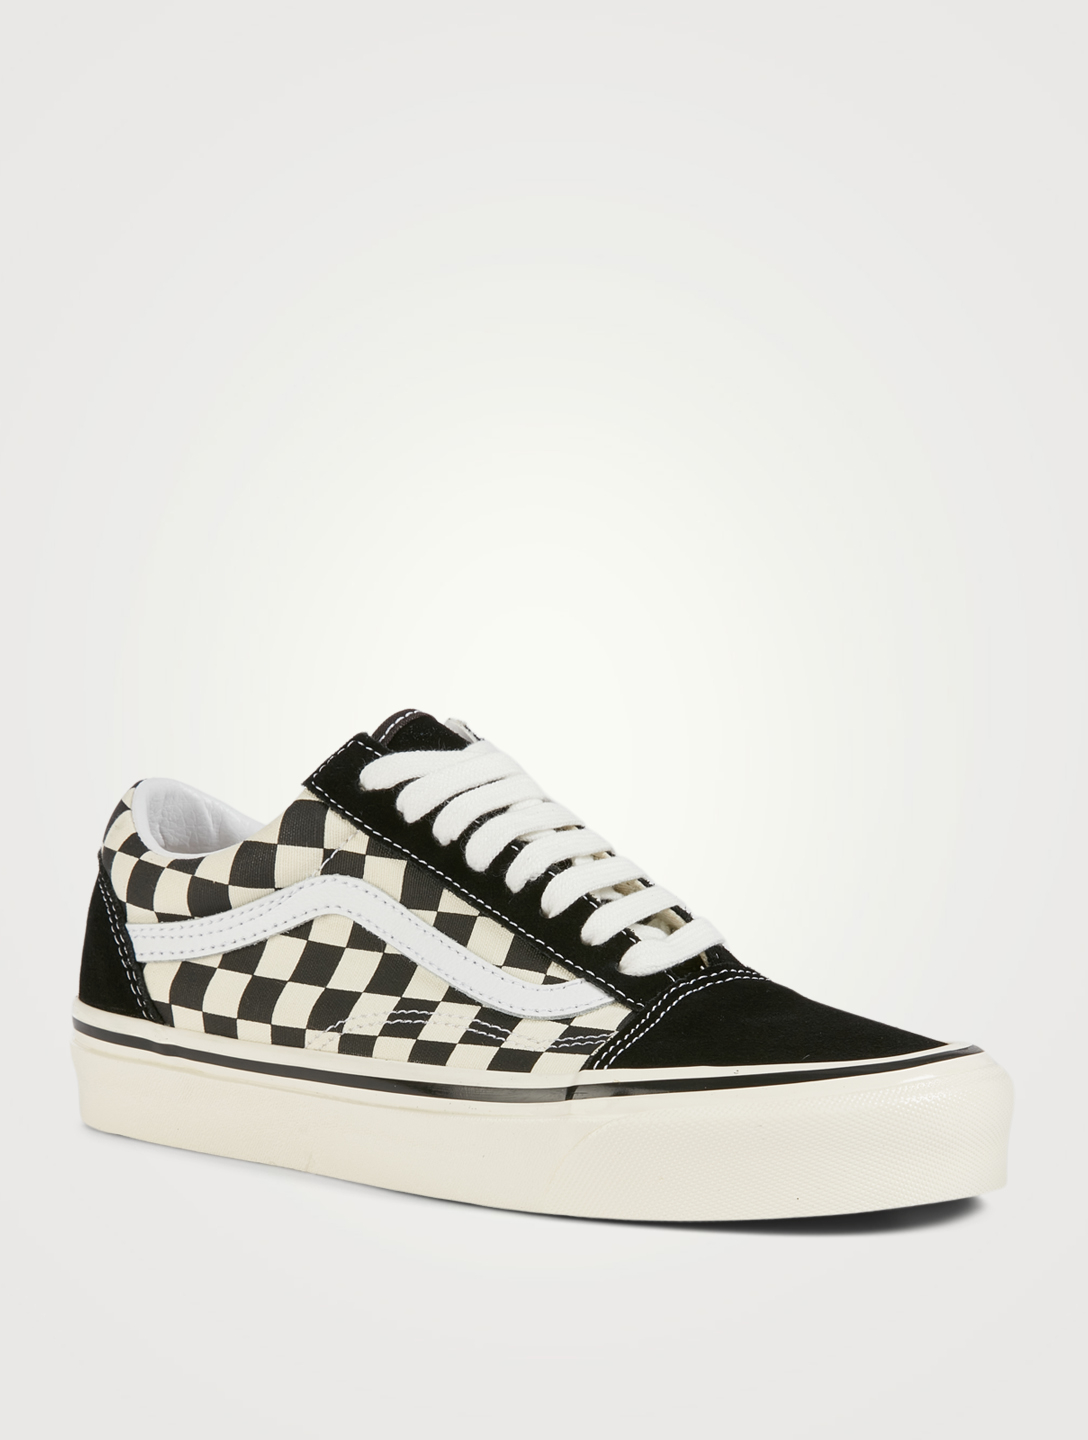 VANS Anaheim Factory Old Skool 36 DX Suede And Canvas Sneakers In Checker Print Women's Multi